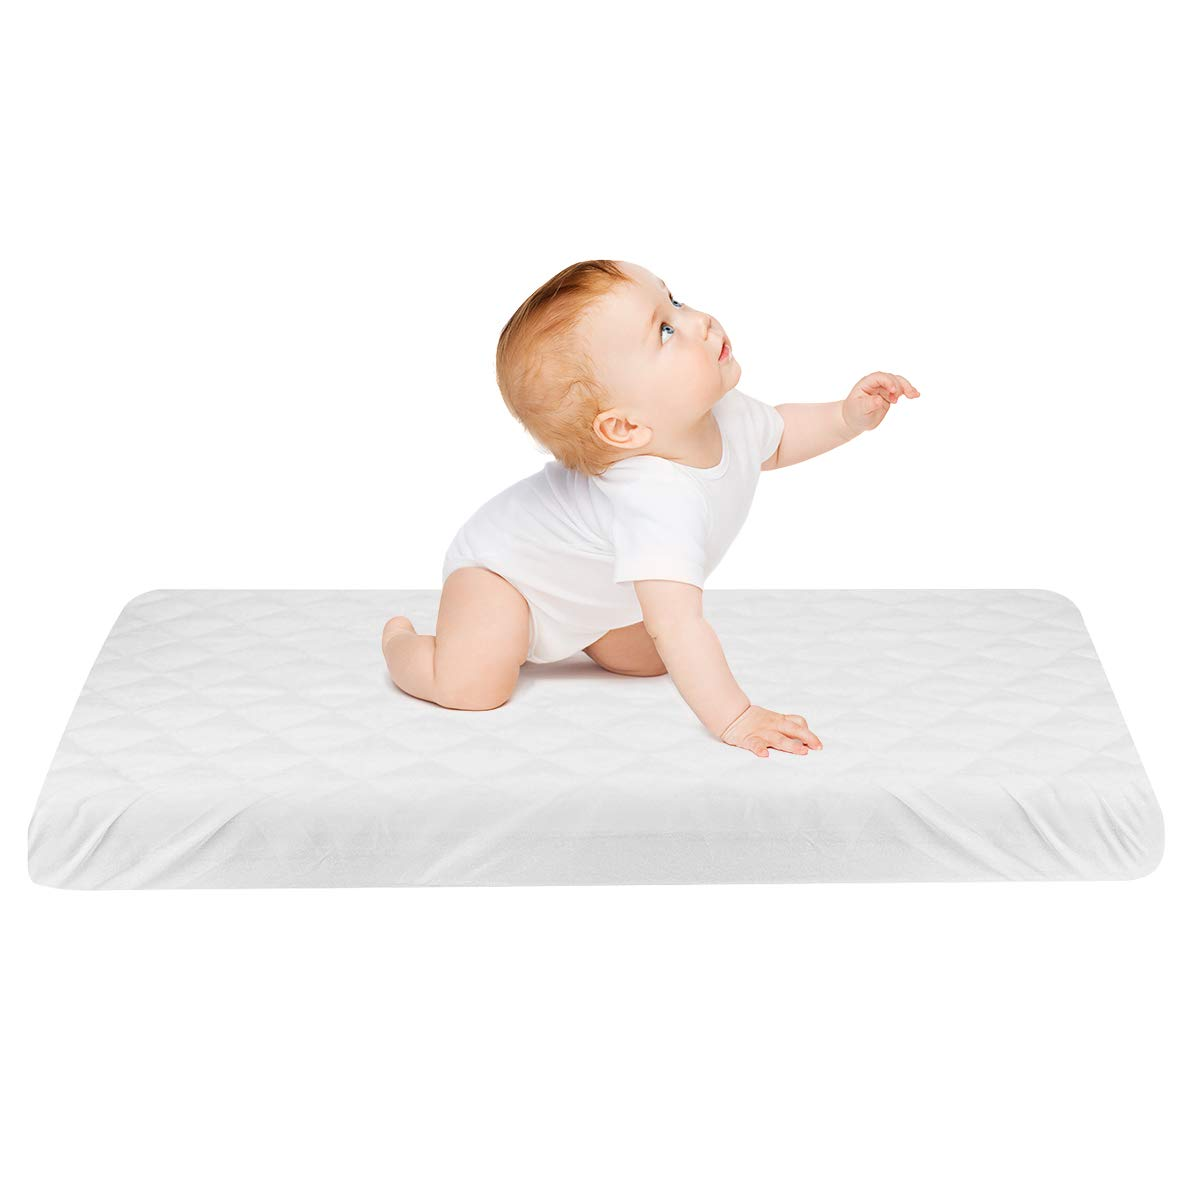 """Zooawa Baby Mattress Pad Cover, Ultra Soft Breathable Waterproof Baby Crib Mattress Reusable Protector Cover for Newborn Infant, 51""""L x 28""""W, White"""